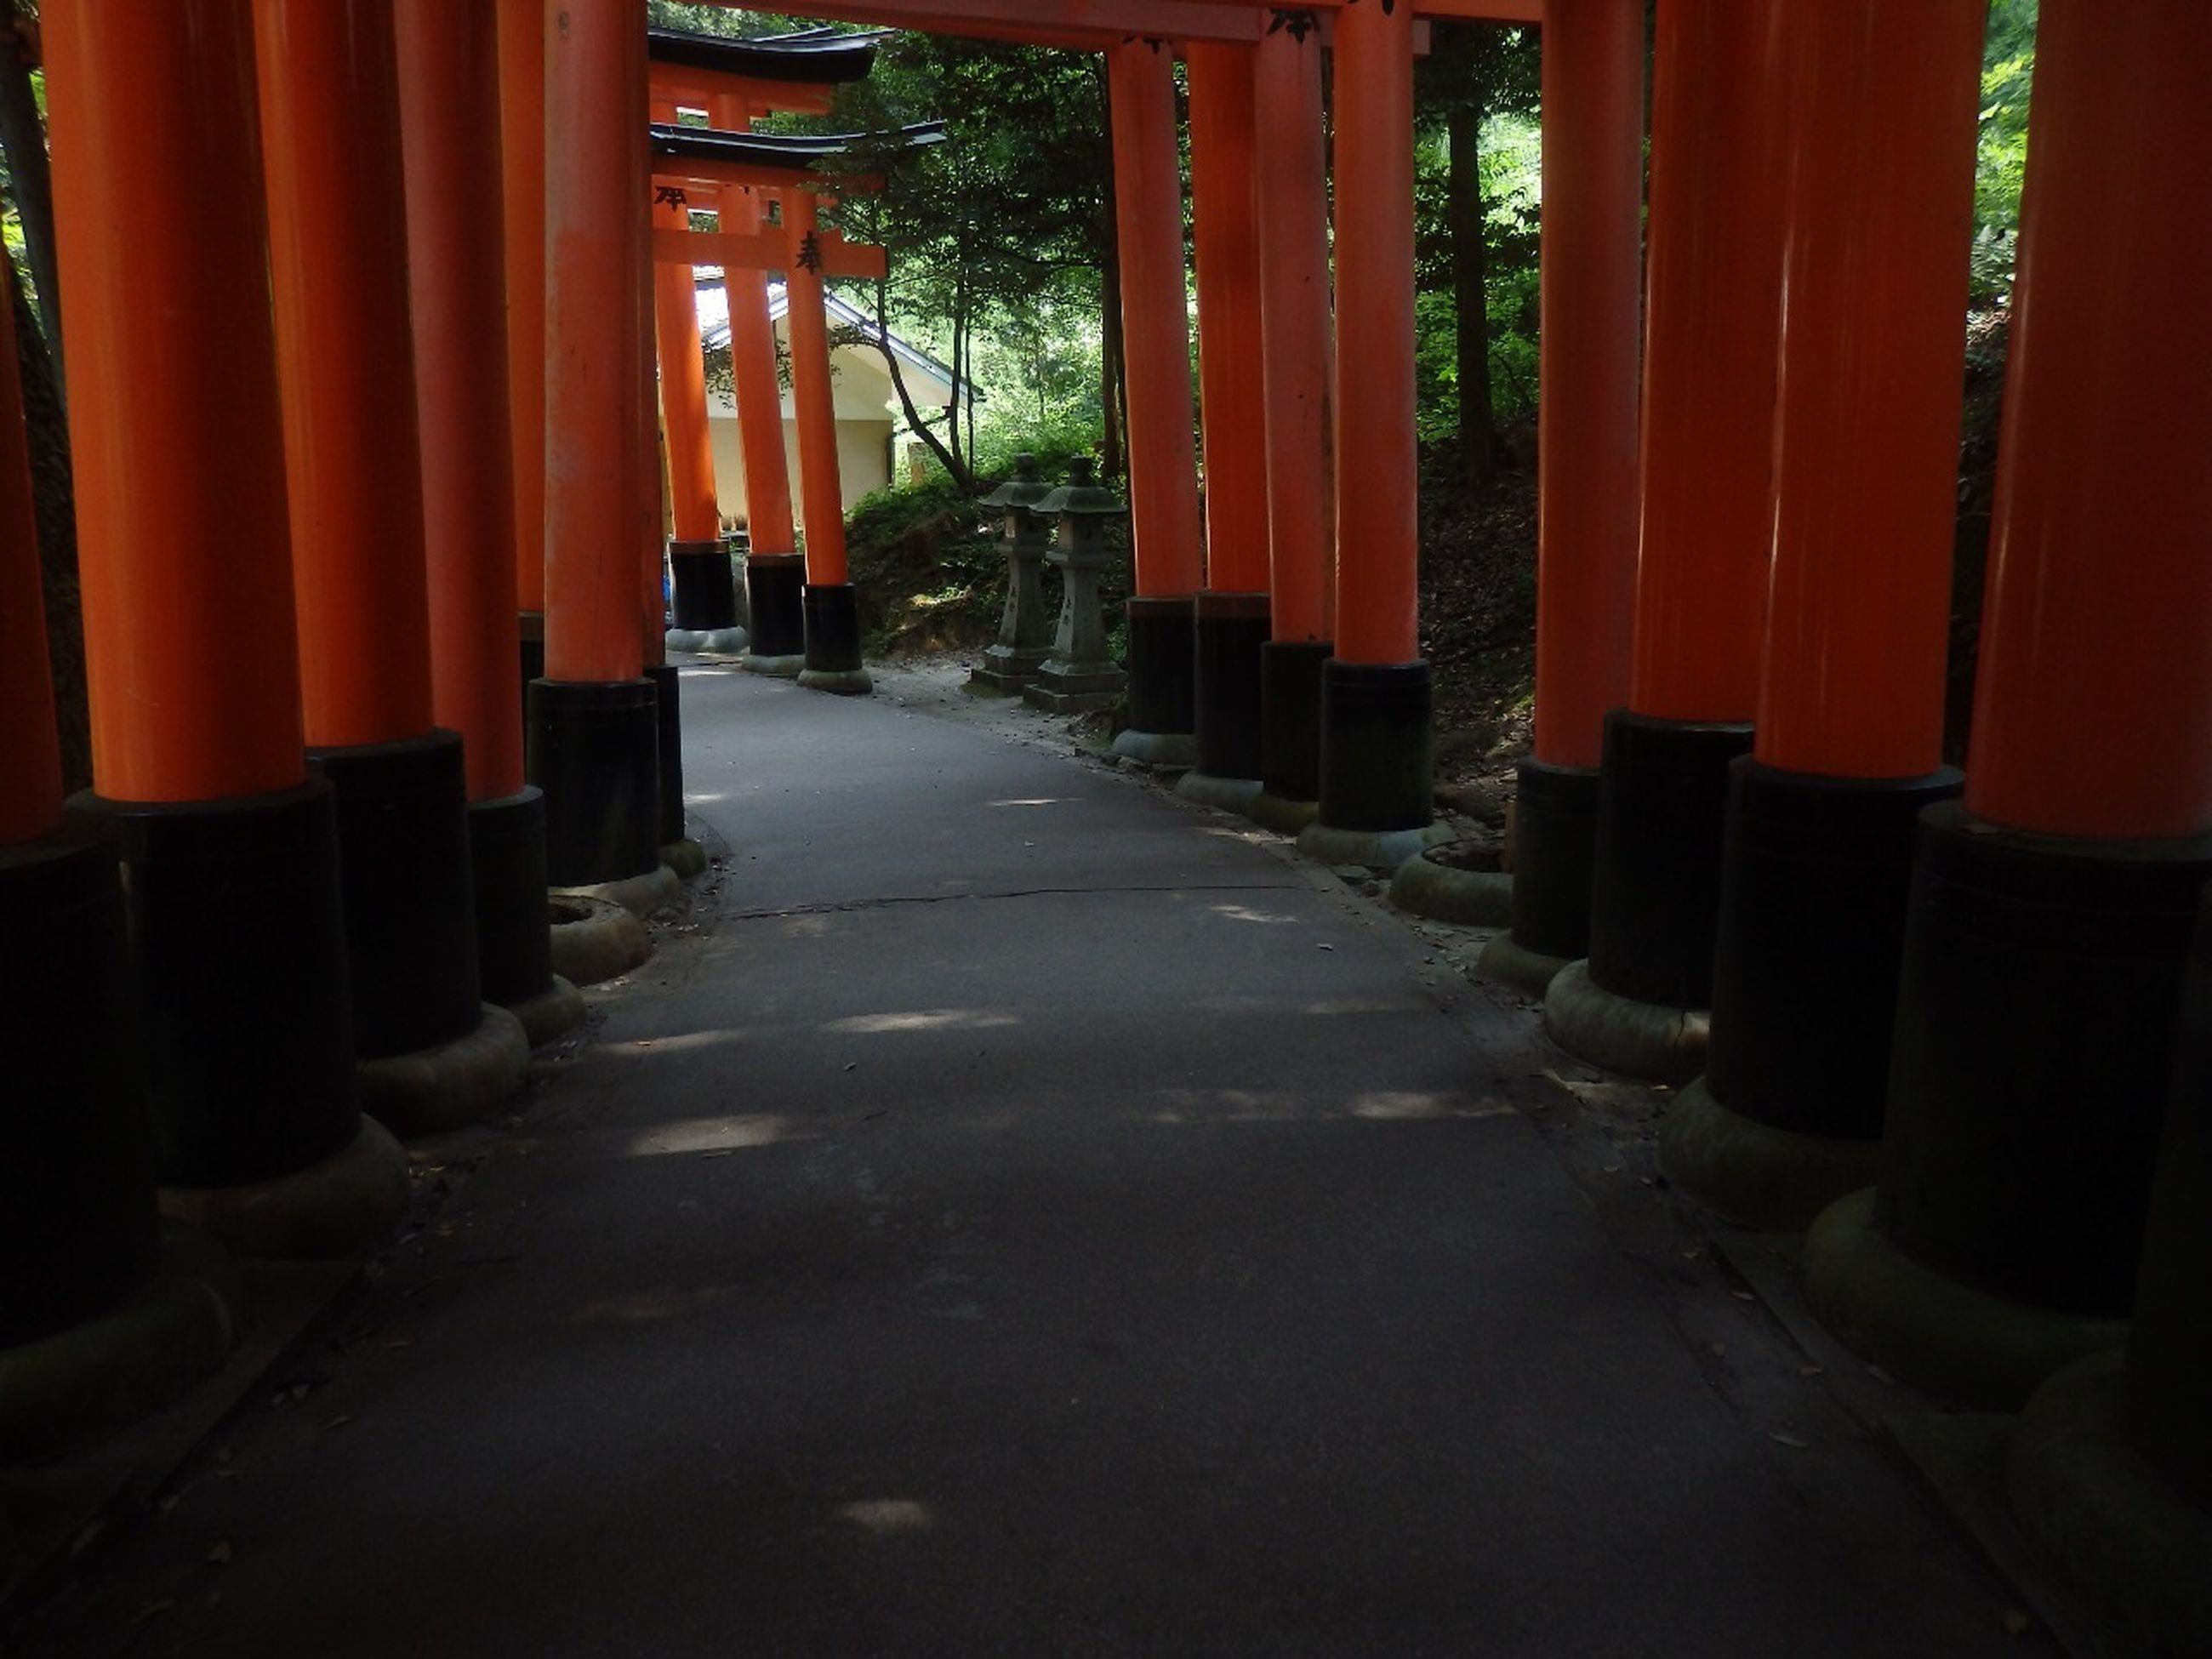 architecture, built structure, the way forward, building exterior, orange color, in a row, architectural column, tree, red, sunlight, diminishing perspective, narrow, walkway, no people, outdoors, shadow, house, footpath, day, pathway